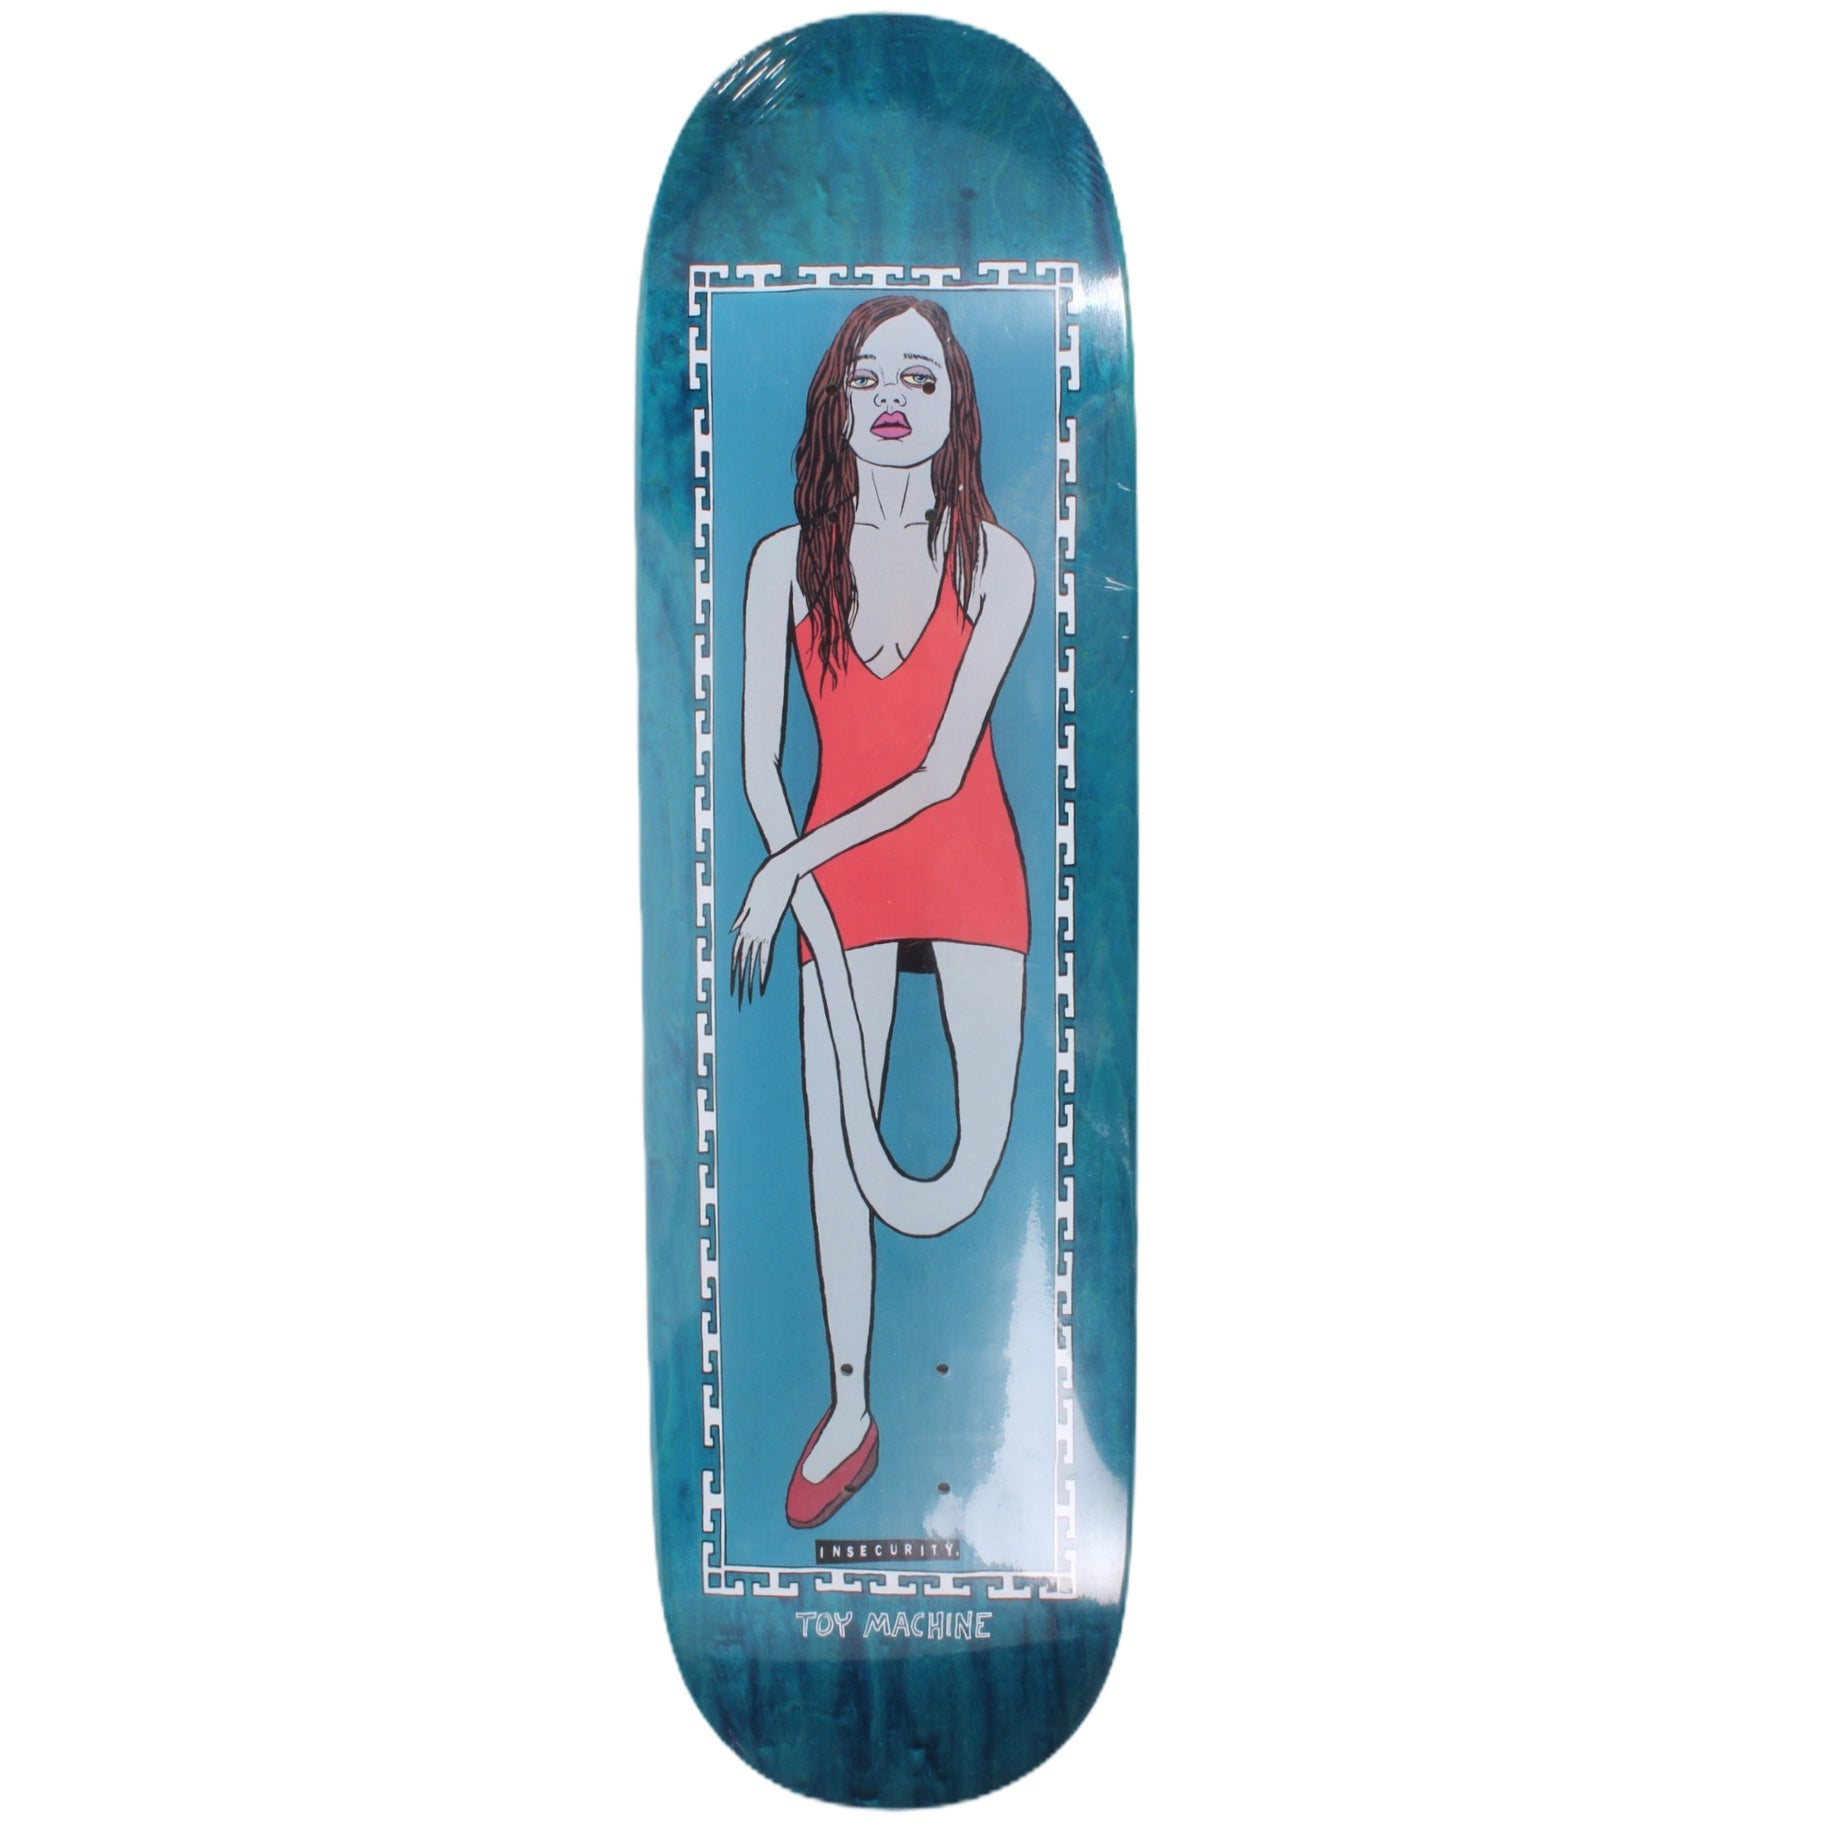 "Overripe Toy Machine Deck Ed Templeton Insecurity 8.5"" 2016"